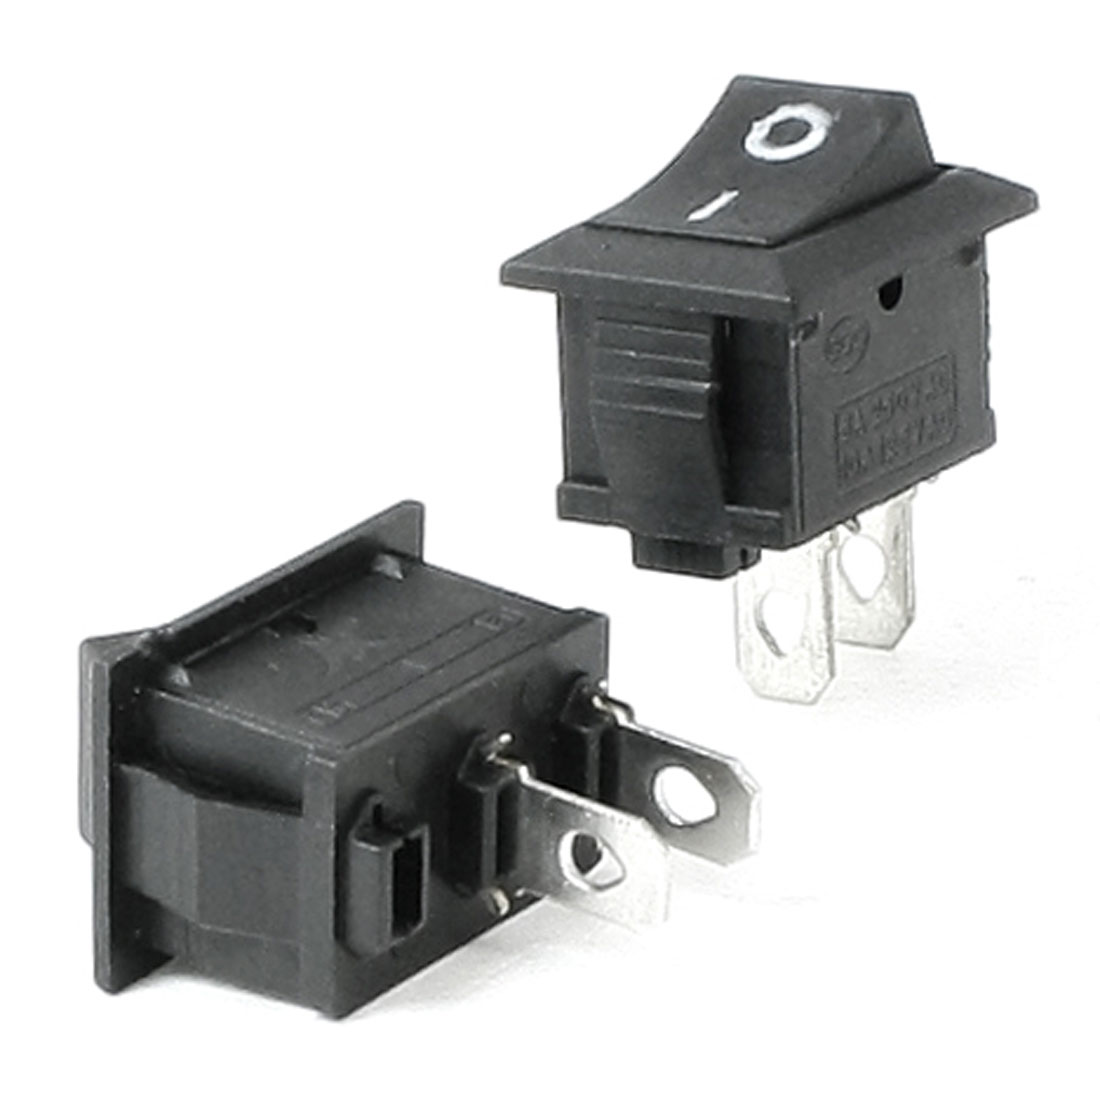 2 Pcs Black ON-OFF SPST 2 Pin Snap in Boat Rocker Switch AC 6A 250V 10A 125V